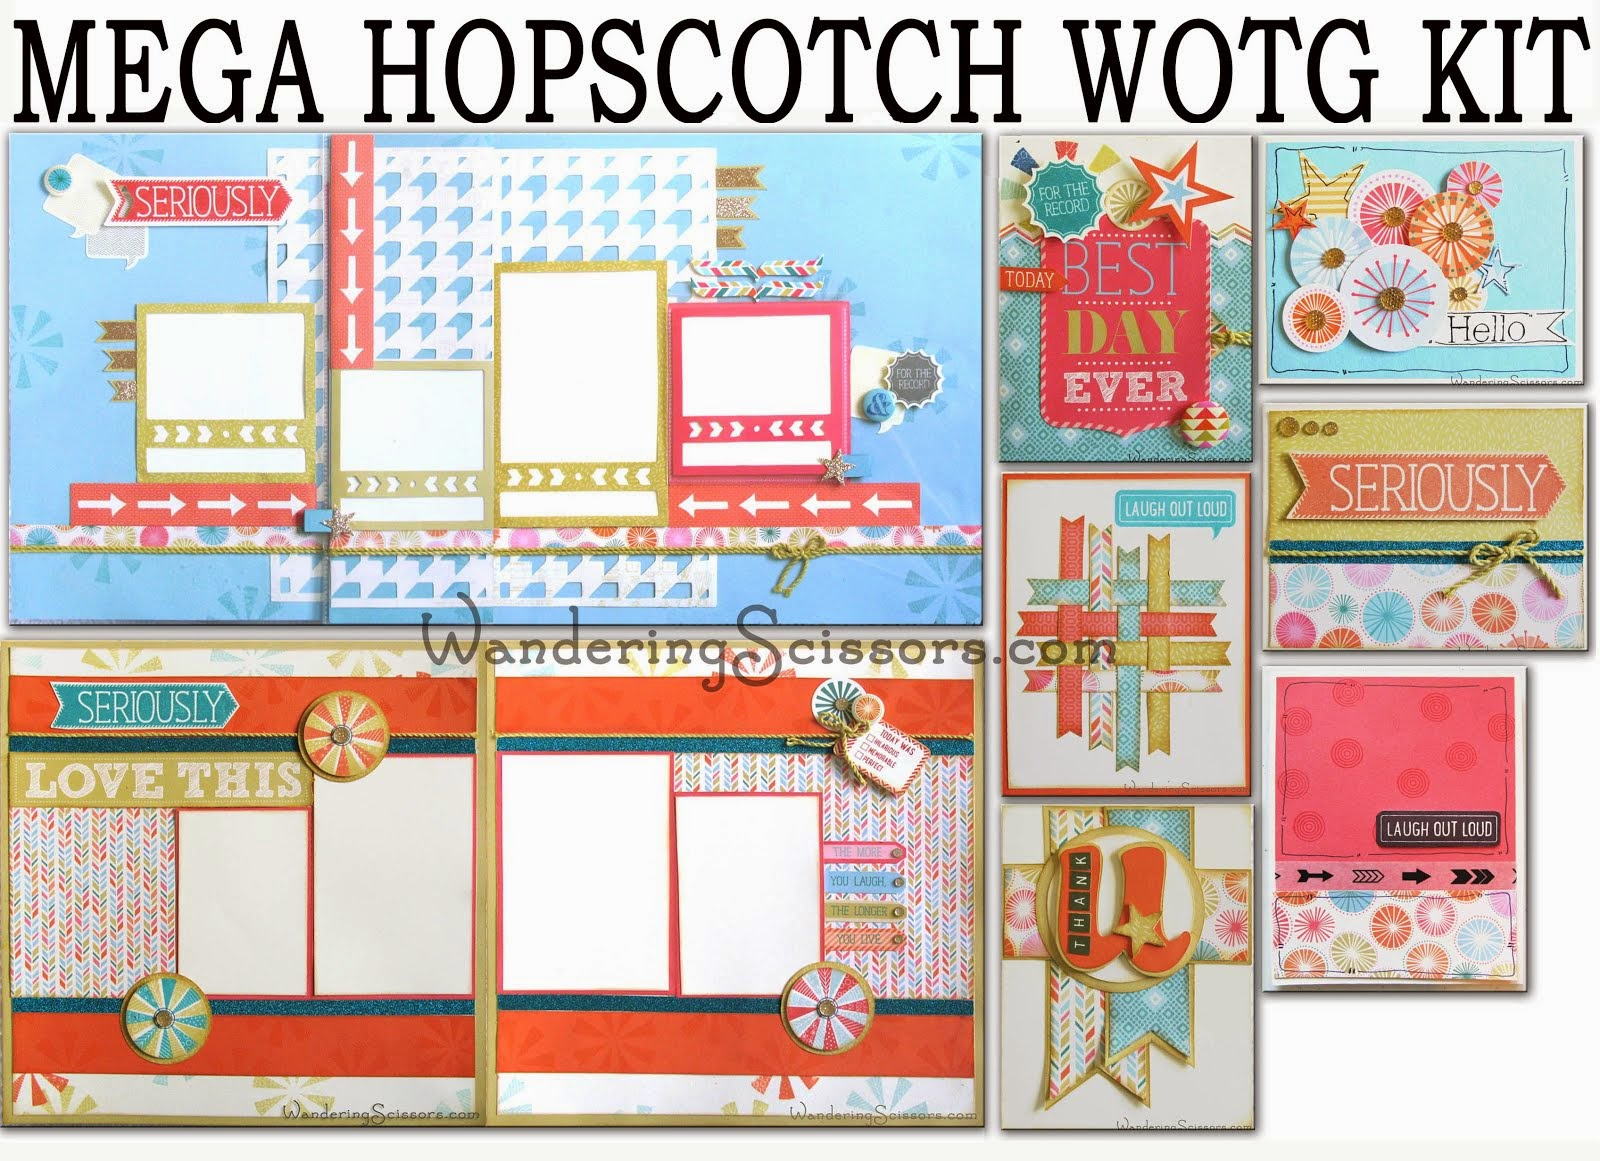 HOPSCOTCH WORKSHOP PACKAGE